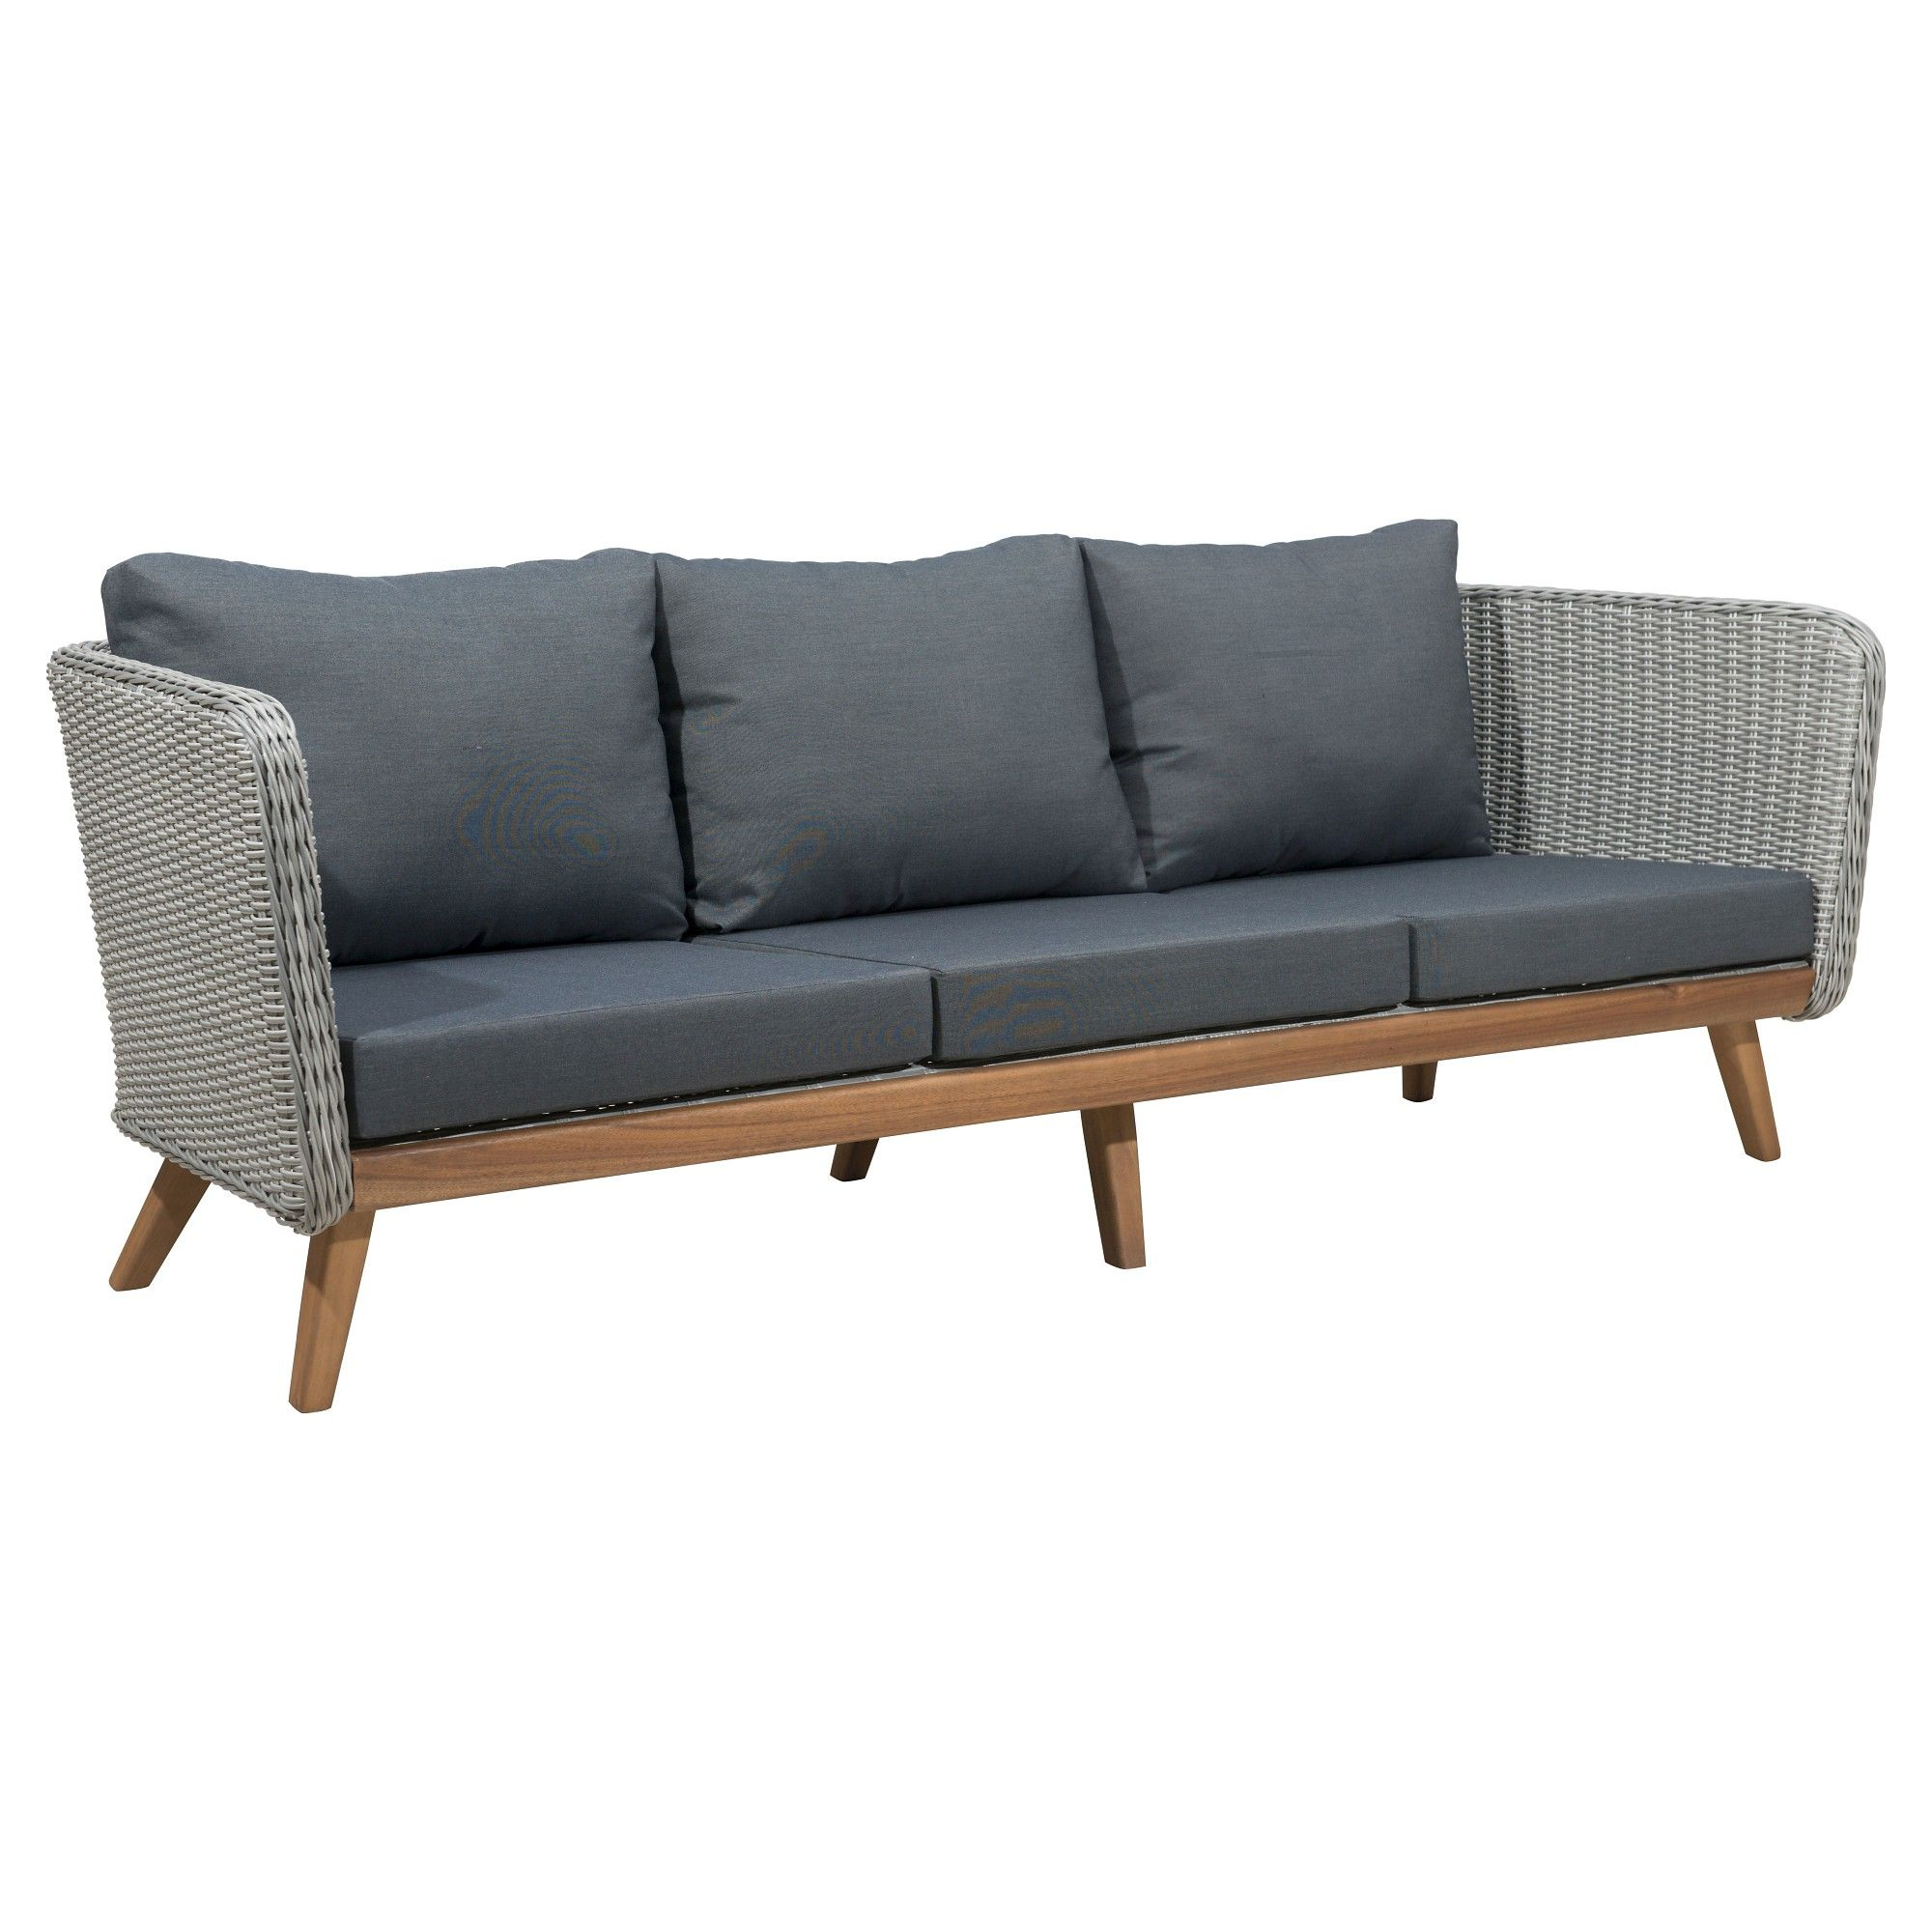 Mid century modern 86 outdoor sofa natural gray zm home